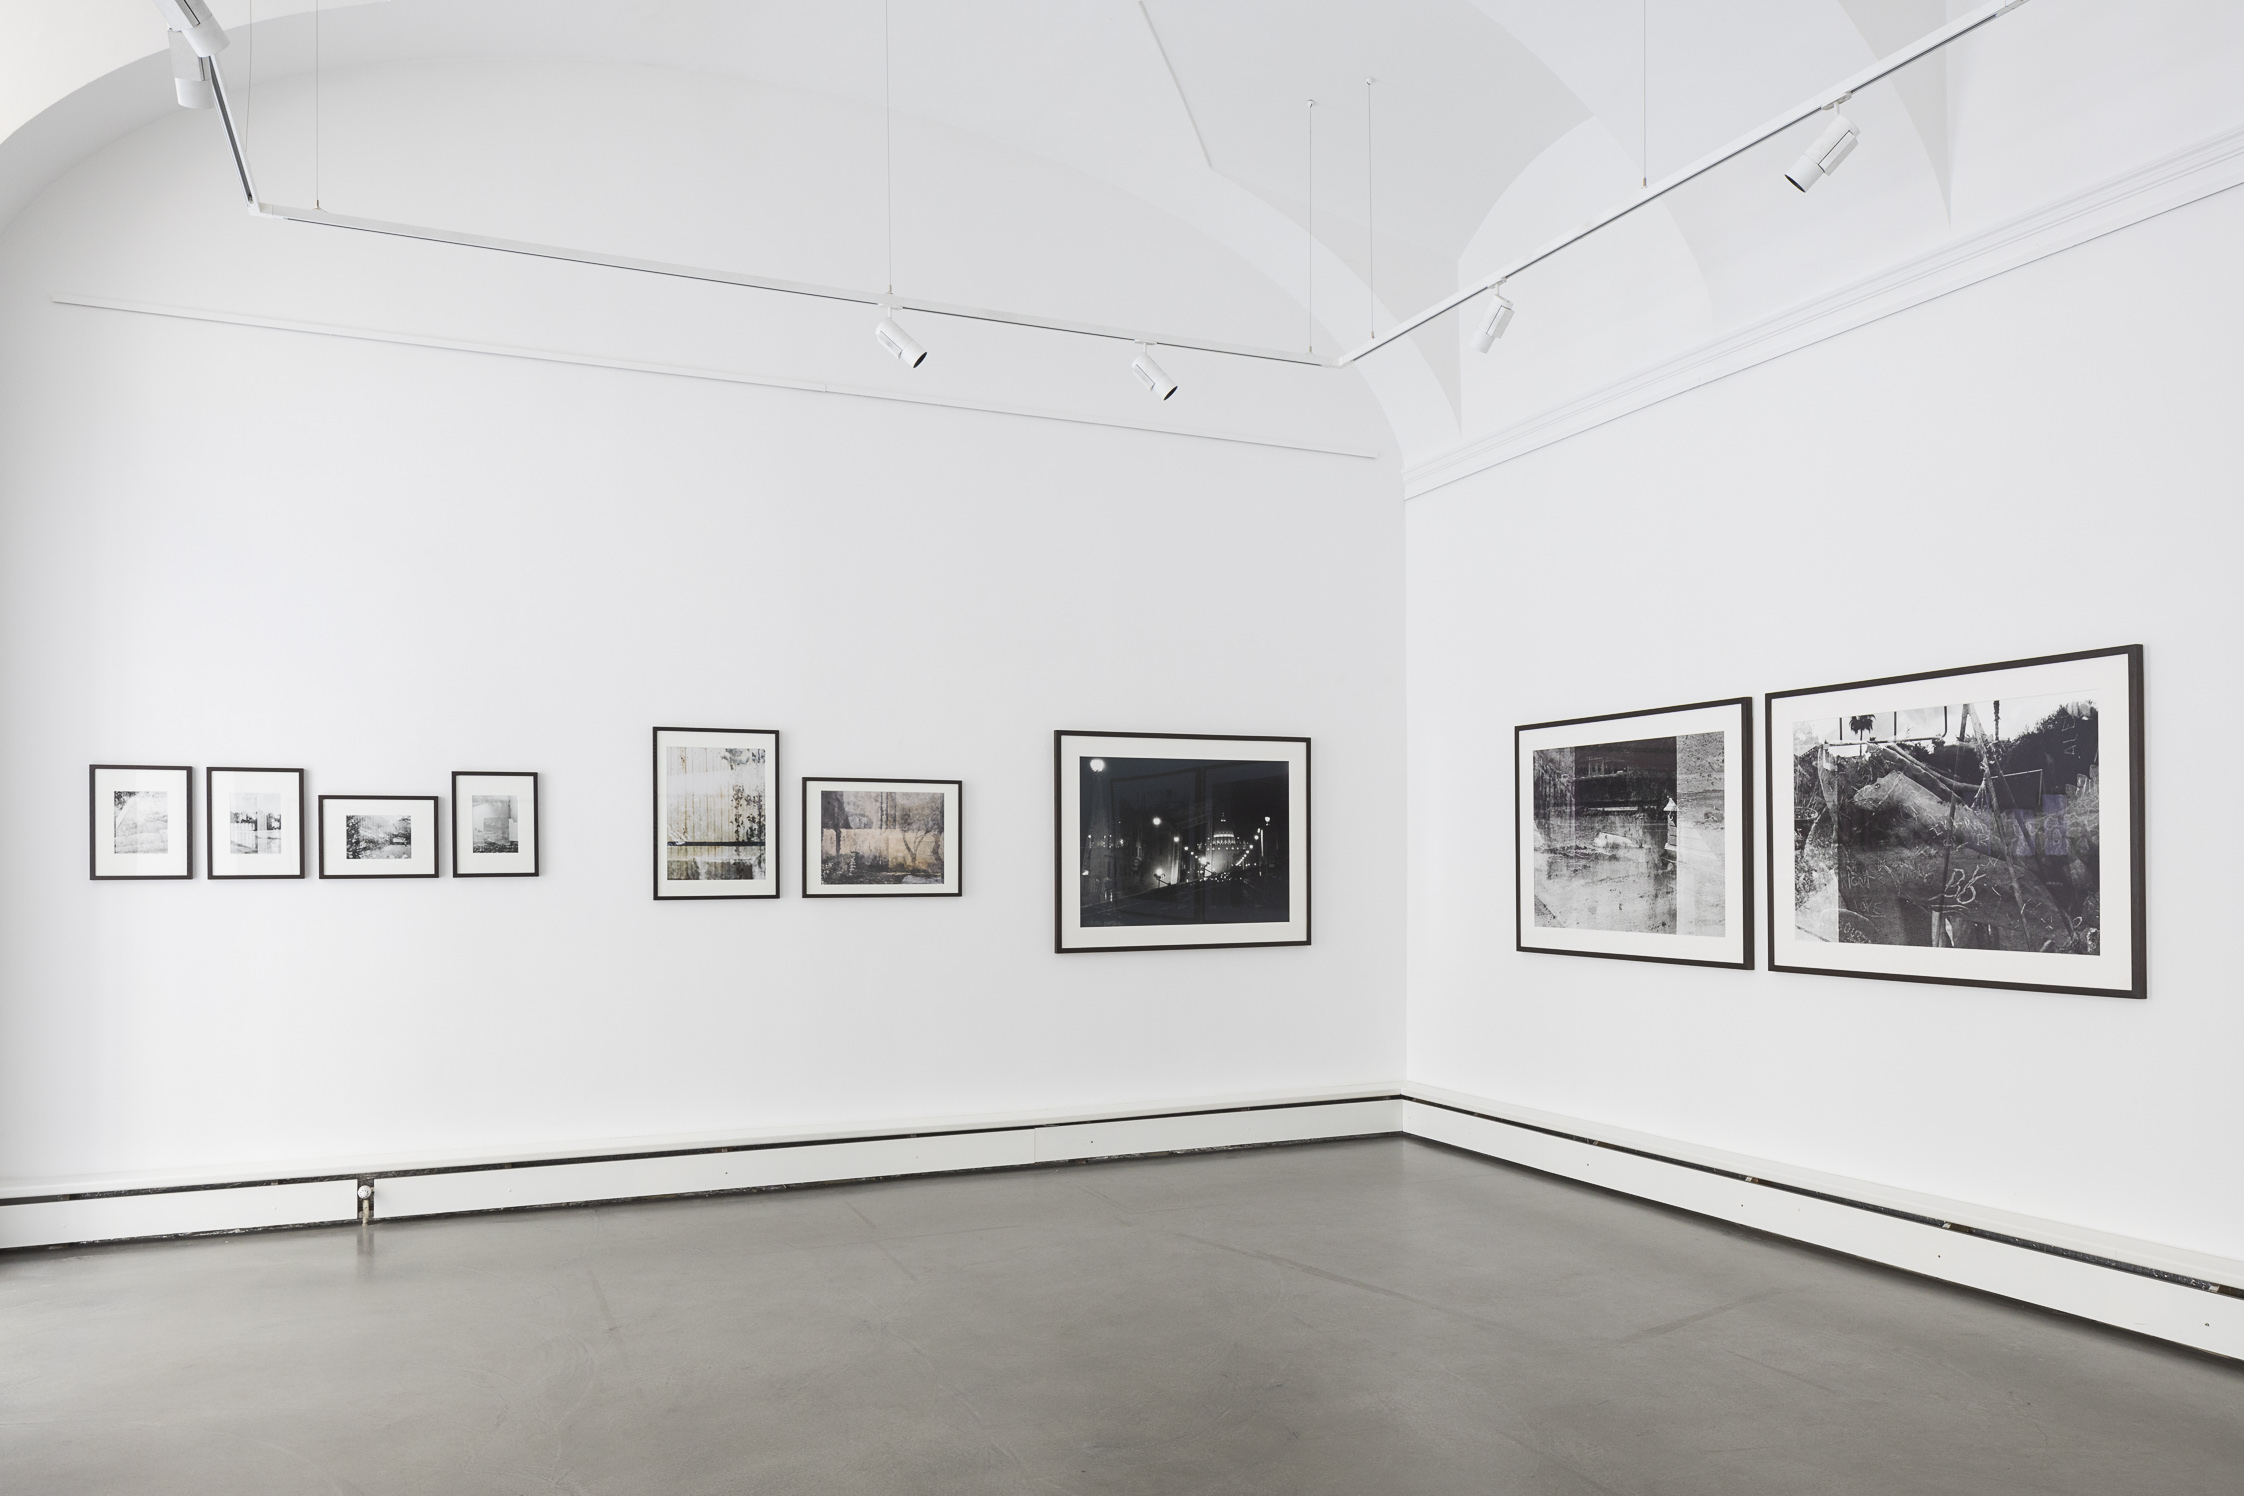 exhibition view by Eva Kelety